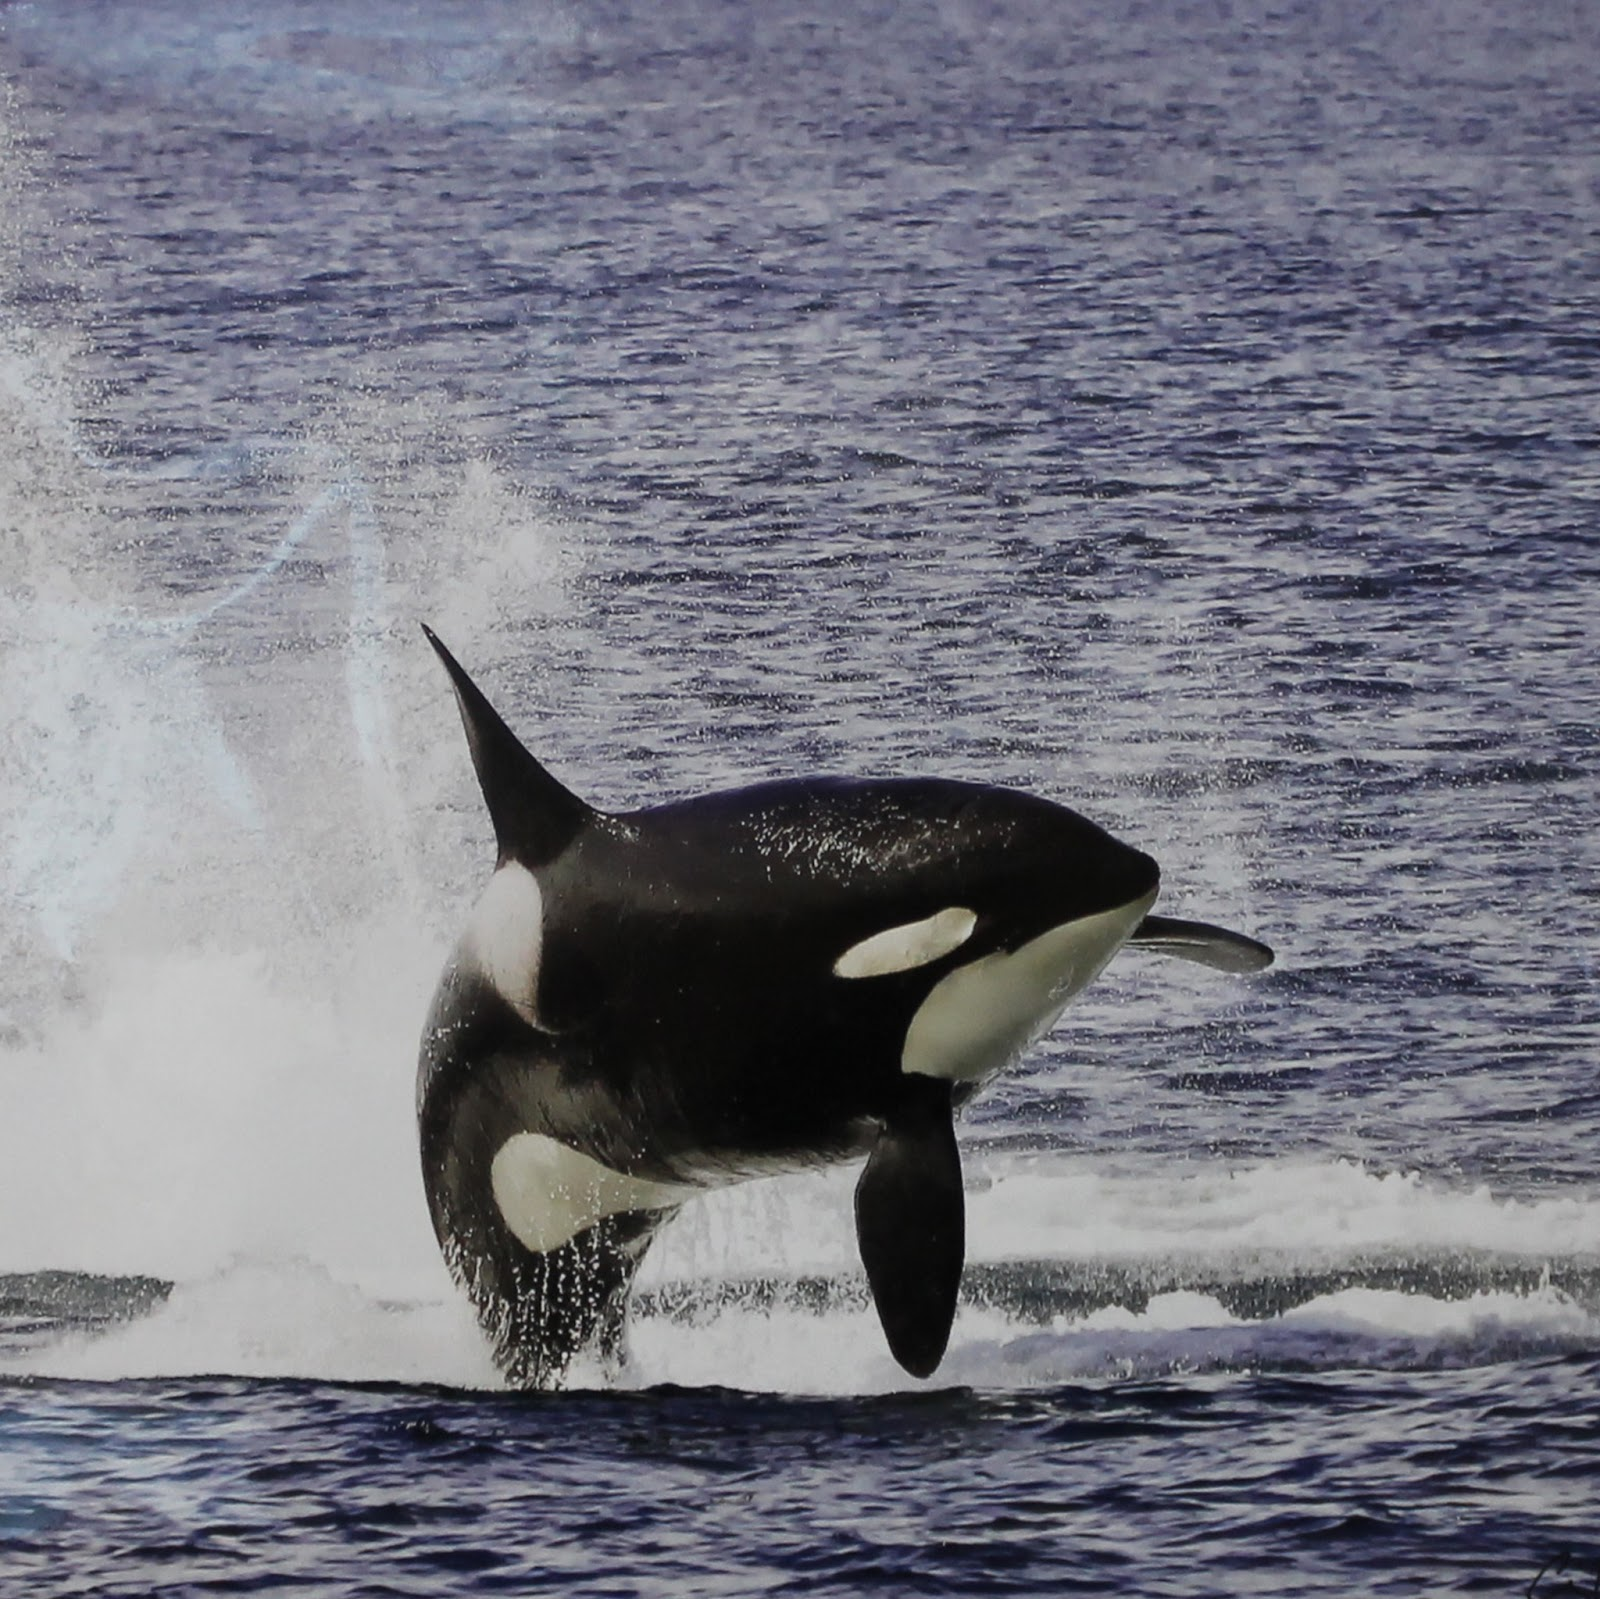 Captive Cetaceans Tragically Sad: Southern Resident Killer Whales